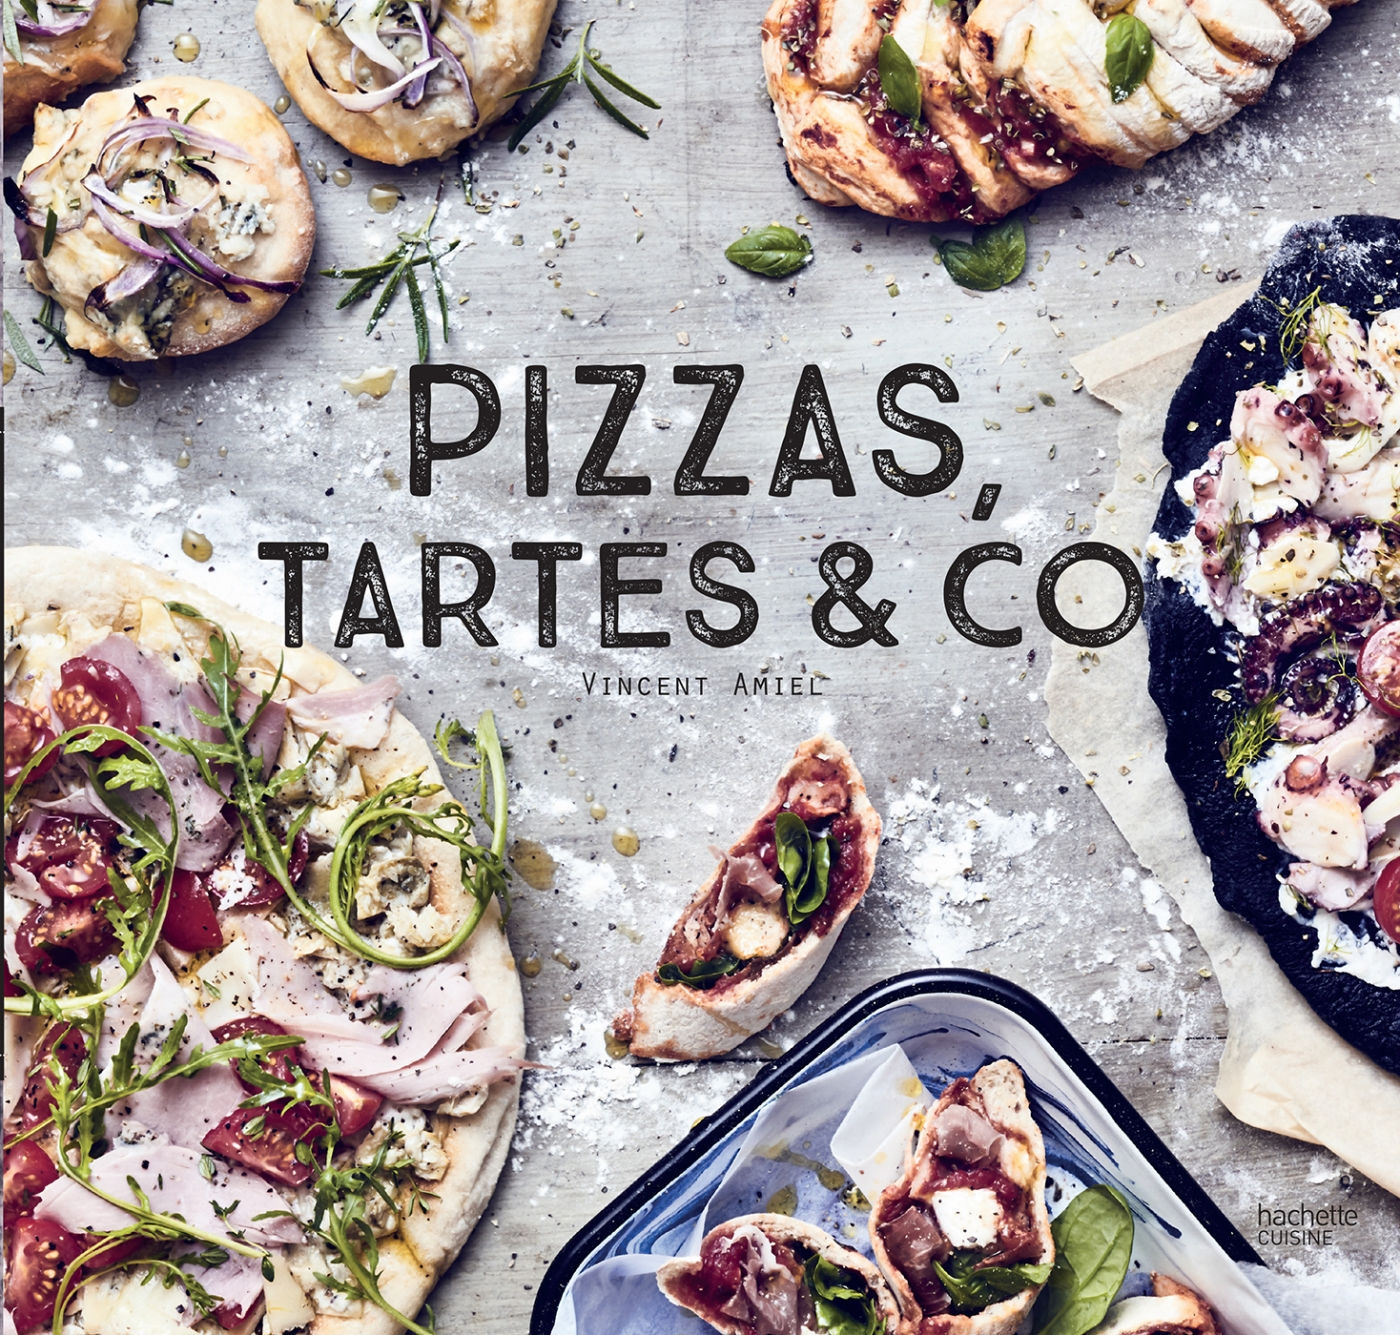 Pizzas, tartes & Co